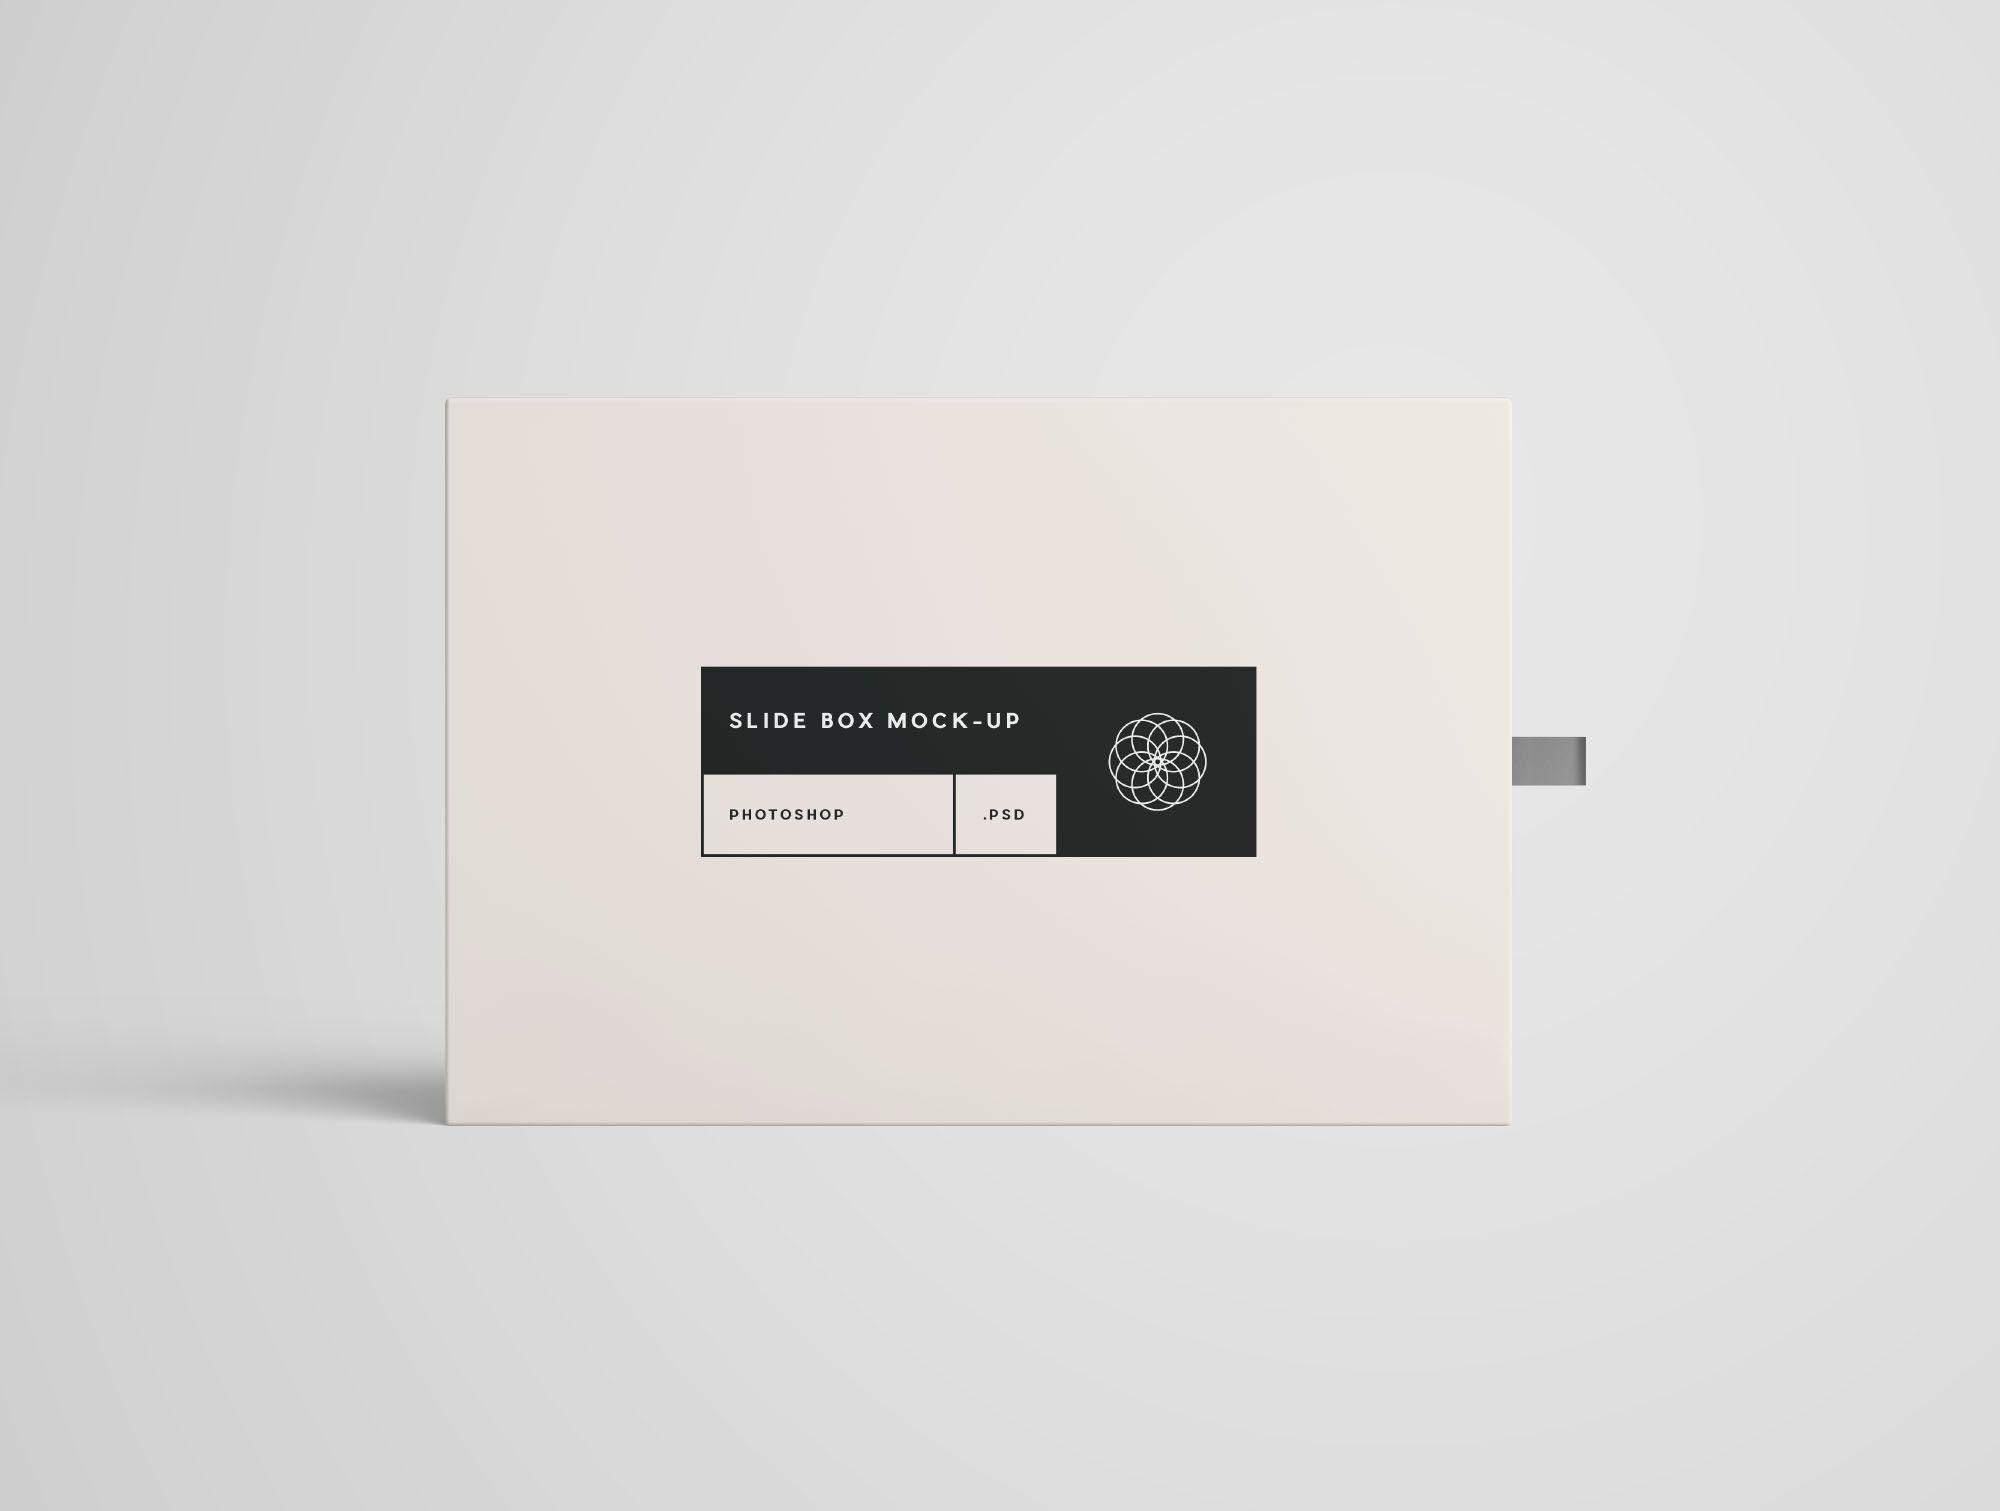 Download Rectangle Slide Box Mockup Slide Box Box Mockup Mockup Free Psd